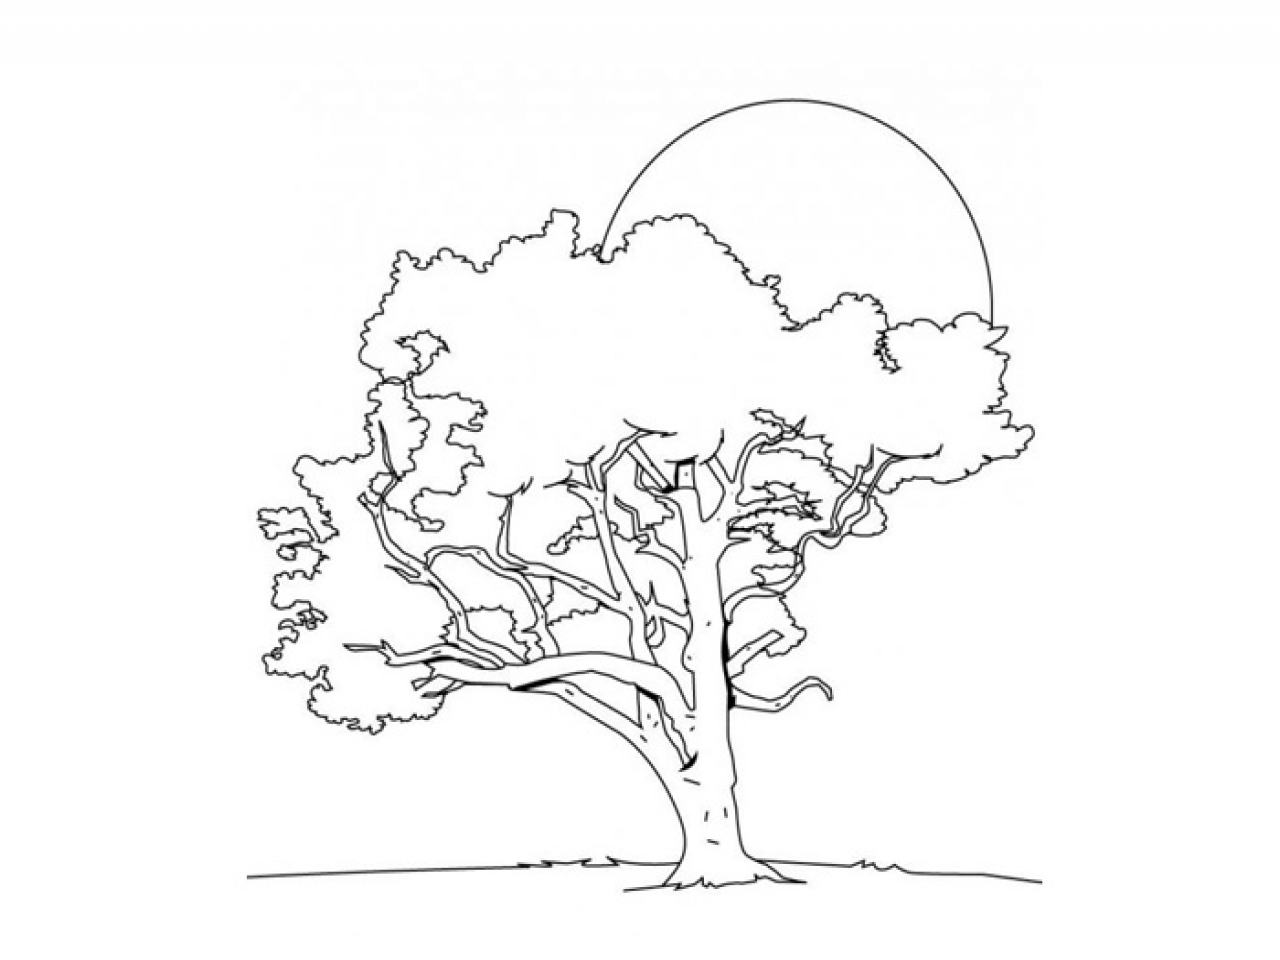 ohio state tree coloring page ohio state buckeyes coloring pages coloring home state ohio coloring tree page